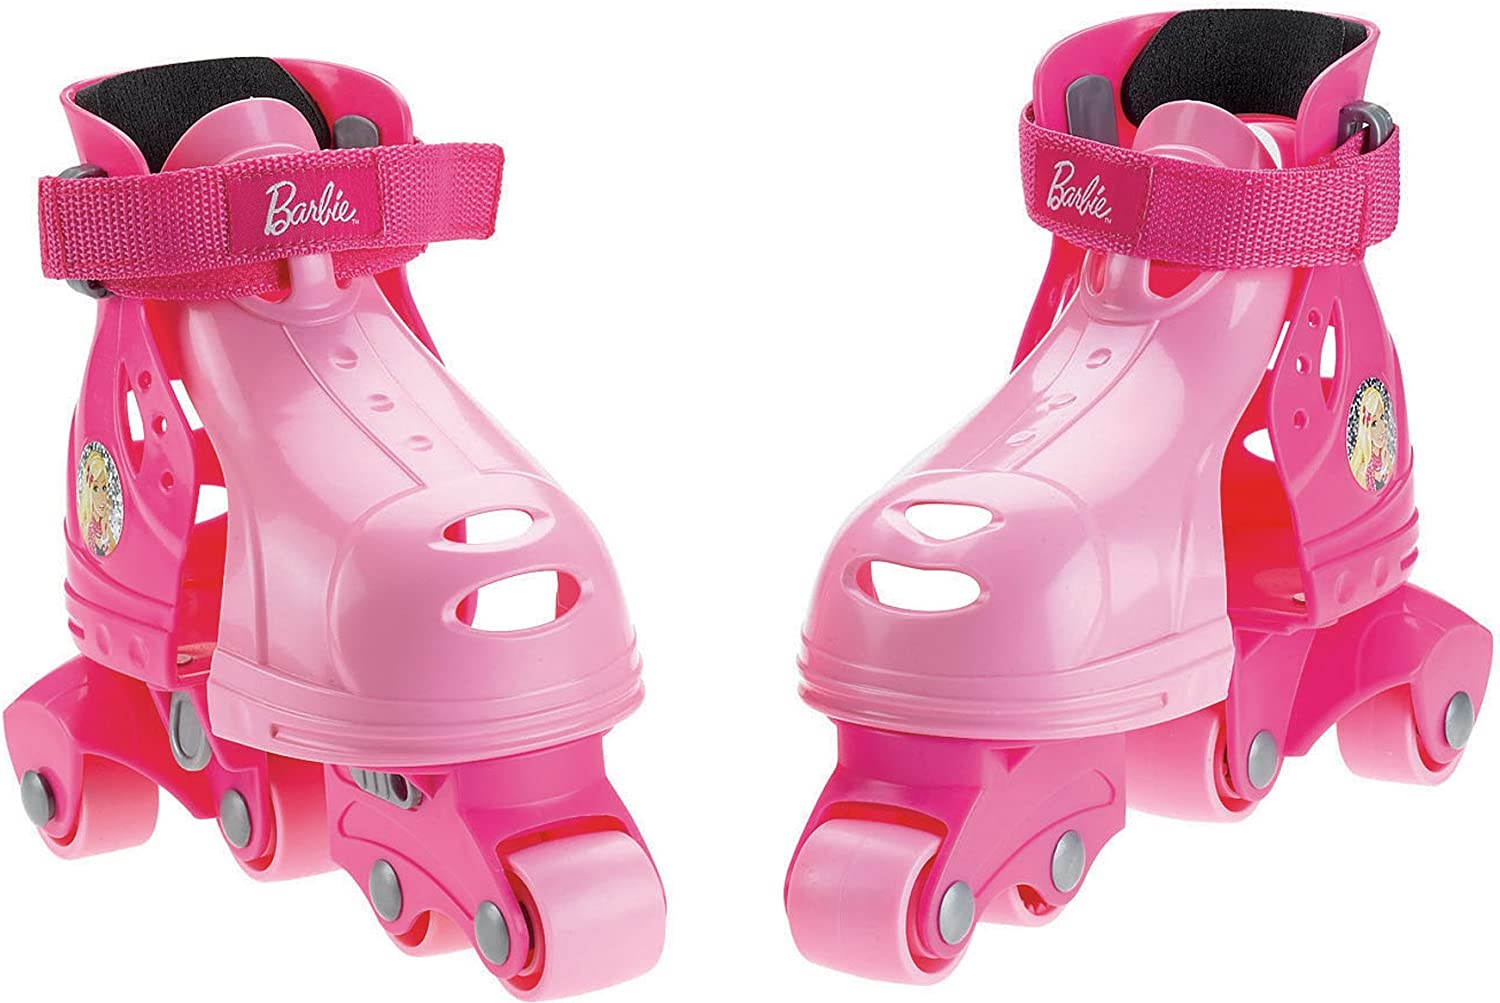 Fisher Price Barbie Grow With Me 1 2 3 Inline Skates Toys Games